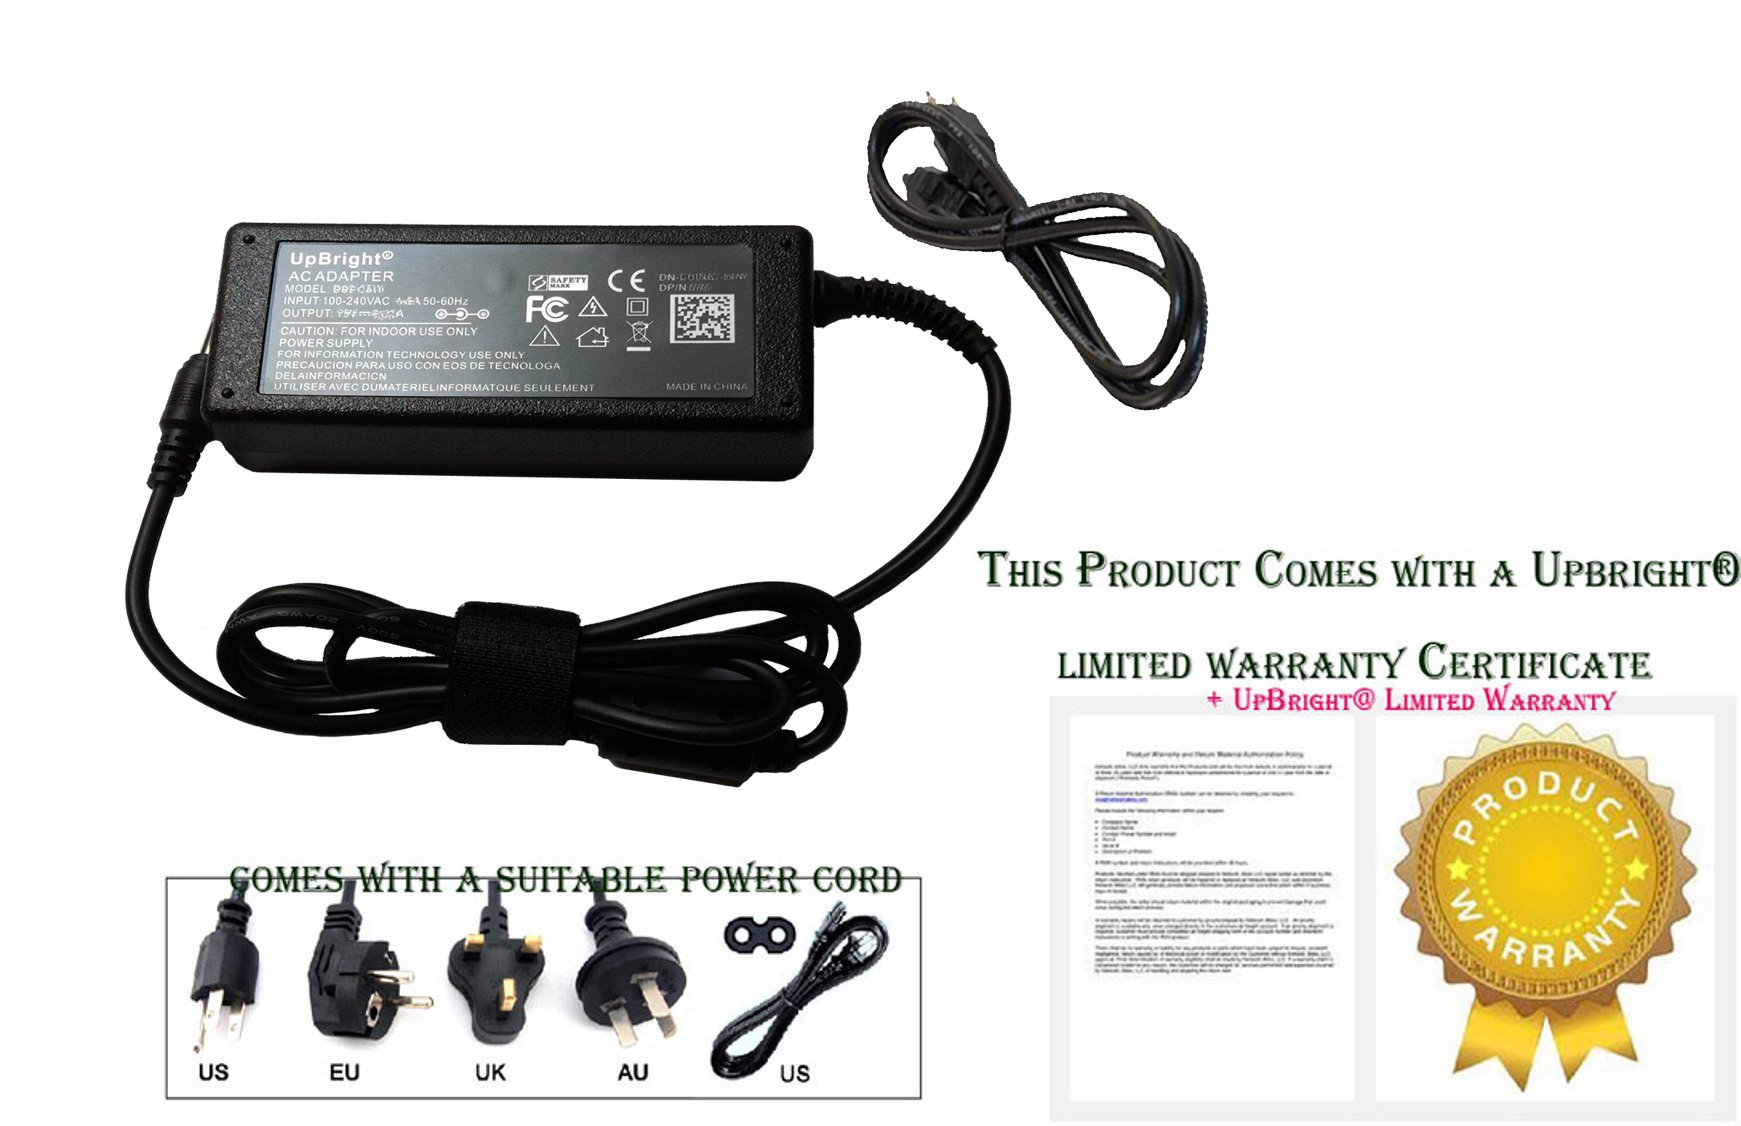 UpBright New Global 36V AC / DC Adapter For Kodak Hero 4.2 42 3.2 32 9.1 Model 1K7383 All-In-One AIO Inkjet Printer 36VDC Power Supply Cord Cable PS Charger Mains PSU